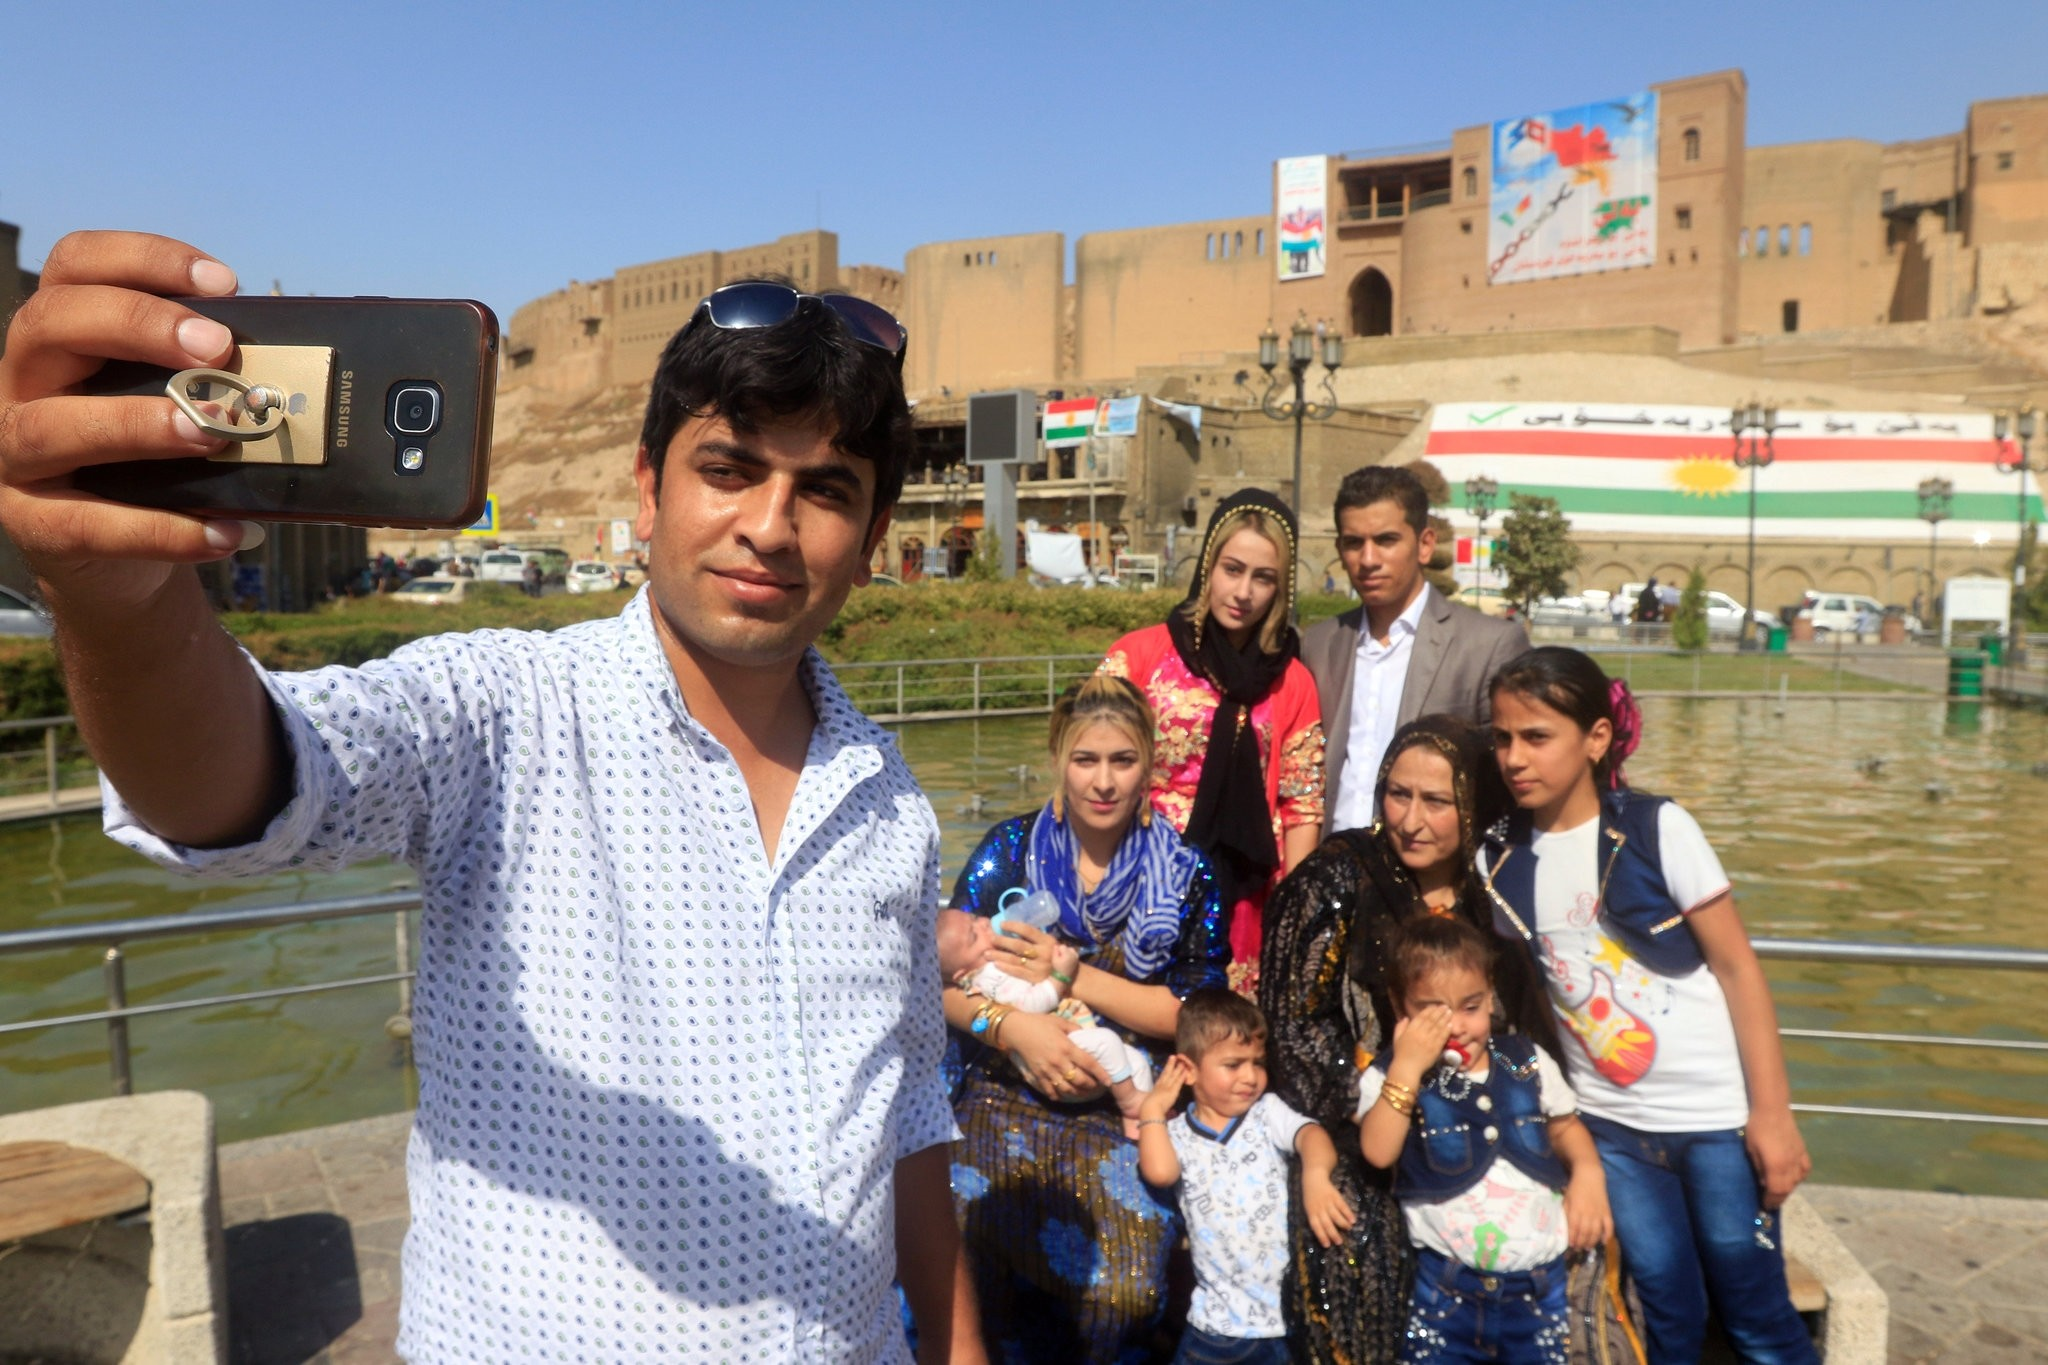 A Kurdish family takes a selfie at the old city of Erbil, Iraq September 27, 2017. (REUTERS Photo)